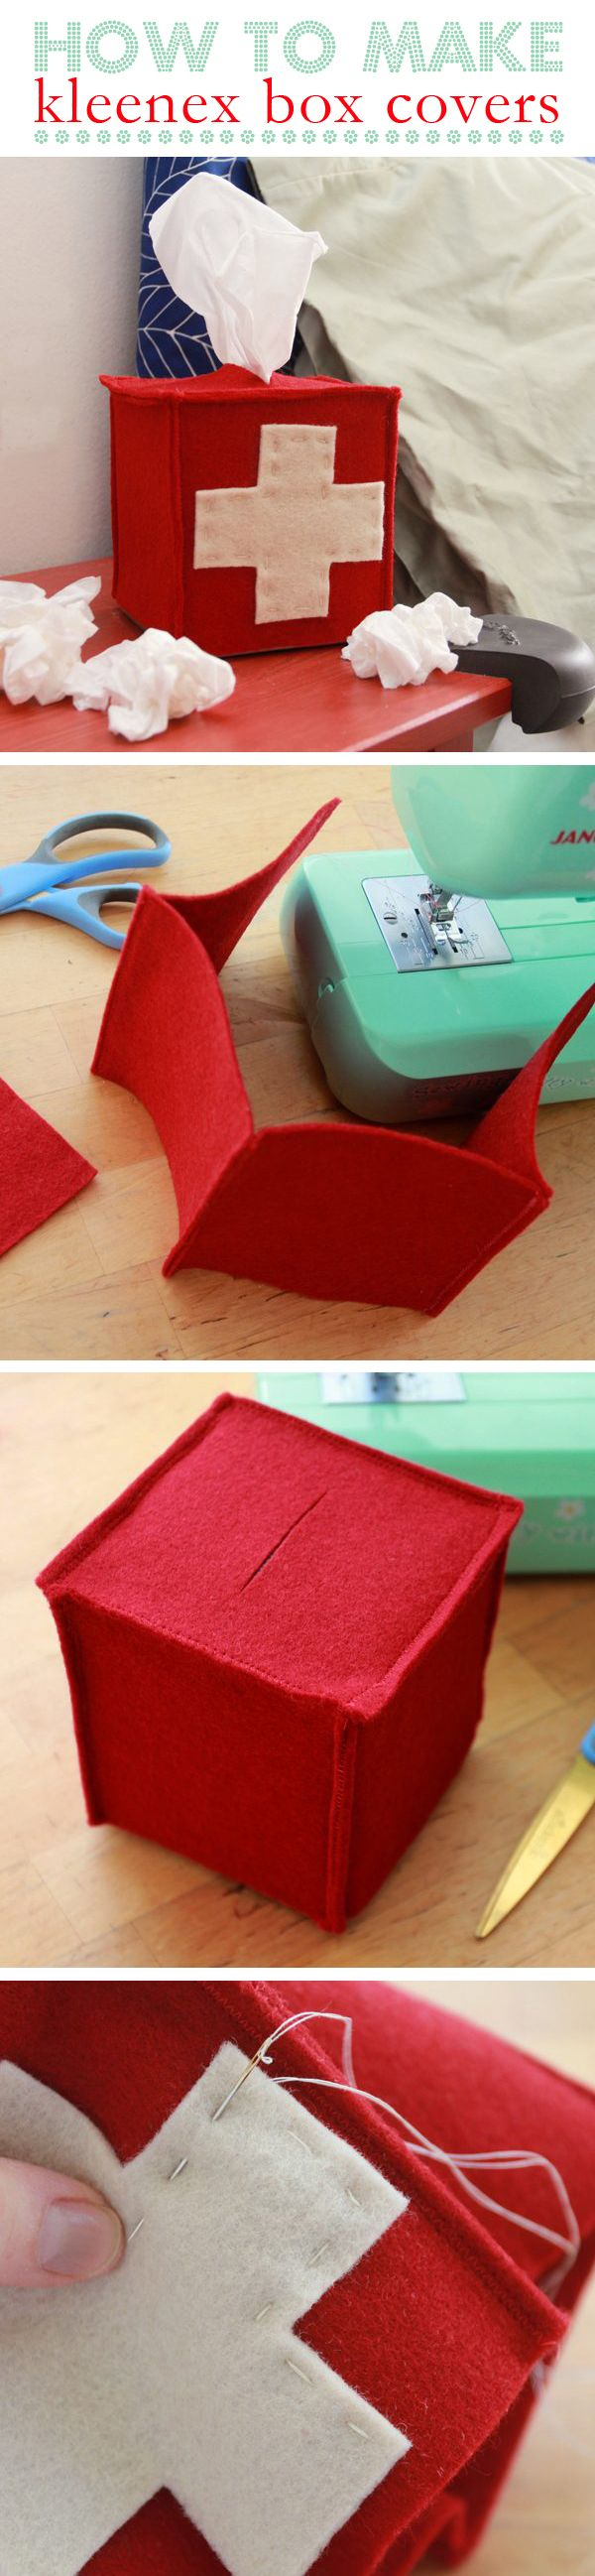 DIY felt tissue box cover. You can make it any design you'd like to match your home. This is great for allergy and flu season! http://www.ehow.com/how_12073022_make-kleenex-box-covers.html?utm_source=pinterest.com&utm_medium=referral&utm_content=inline&utm_campaign=fanpage